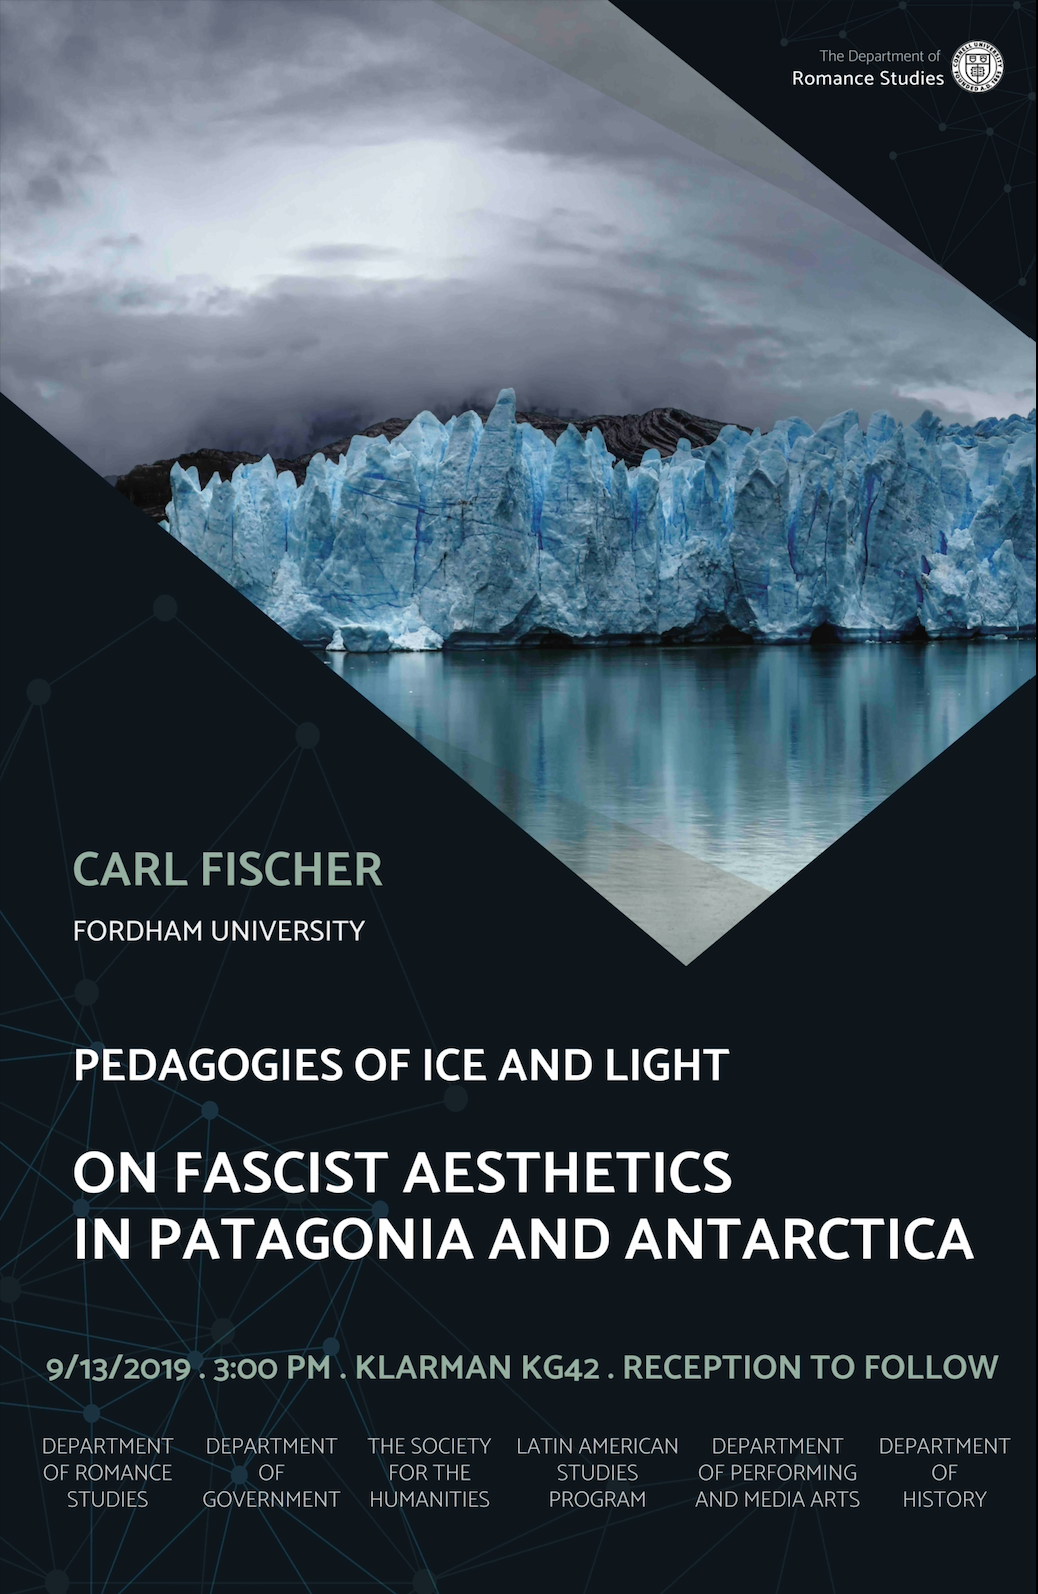 """Carl Fischer, """"Pedagogies of Ice and Light: On Fascist Aesthetics in Patagonia and Antartica"""""""